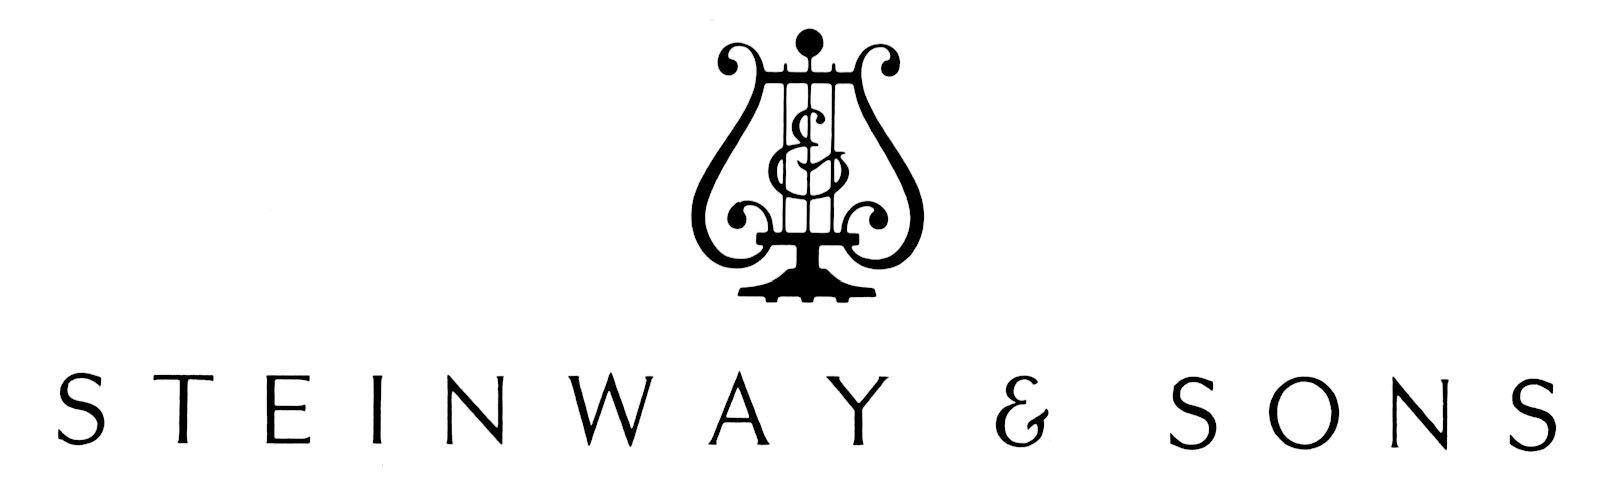 Steinway_and_Sons.jpg